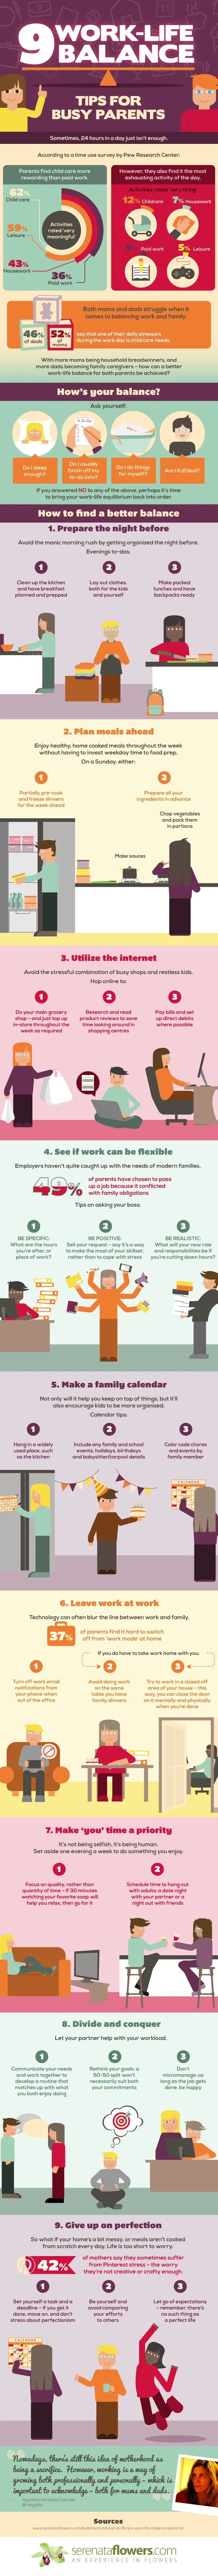 9-Work-Life-Balance-Tips-for-Busy-Parents-US